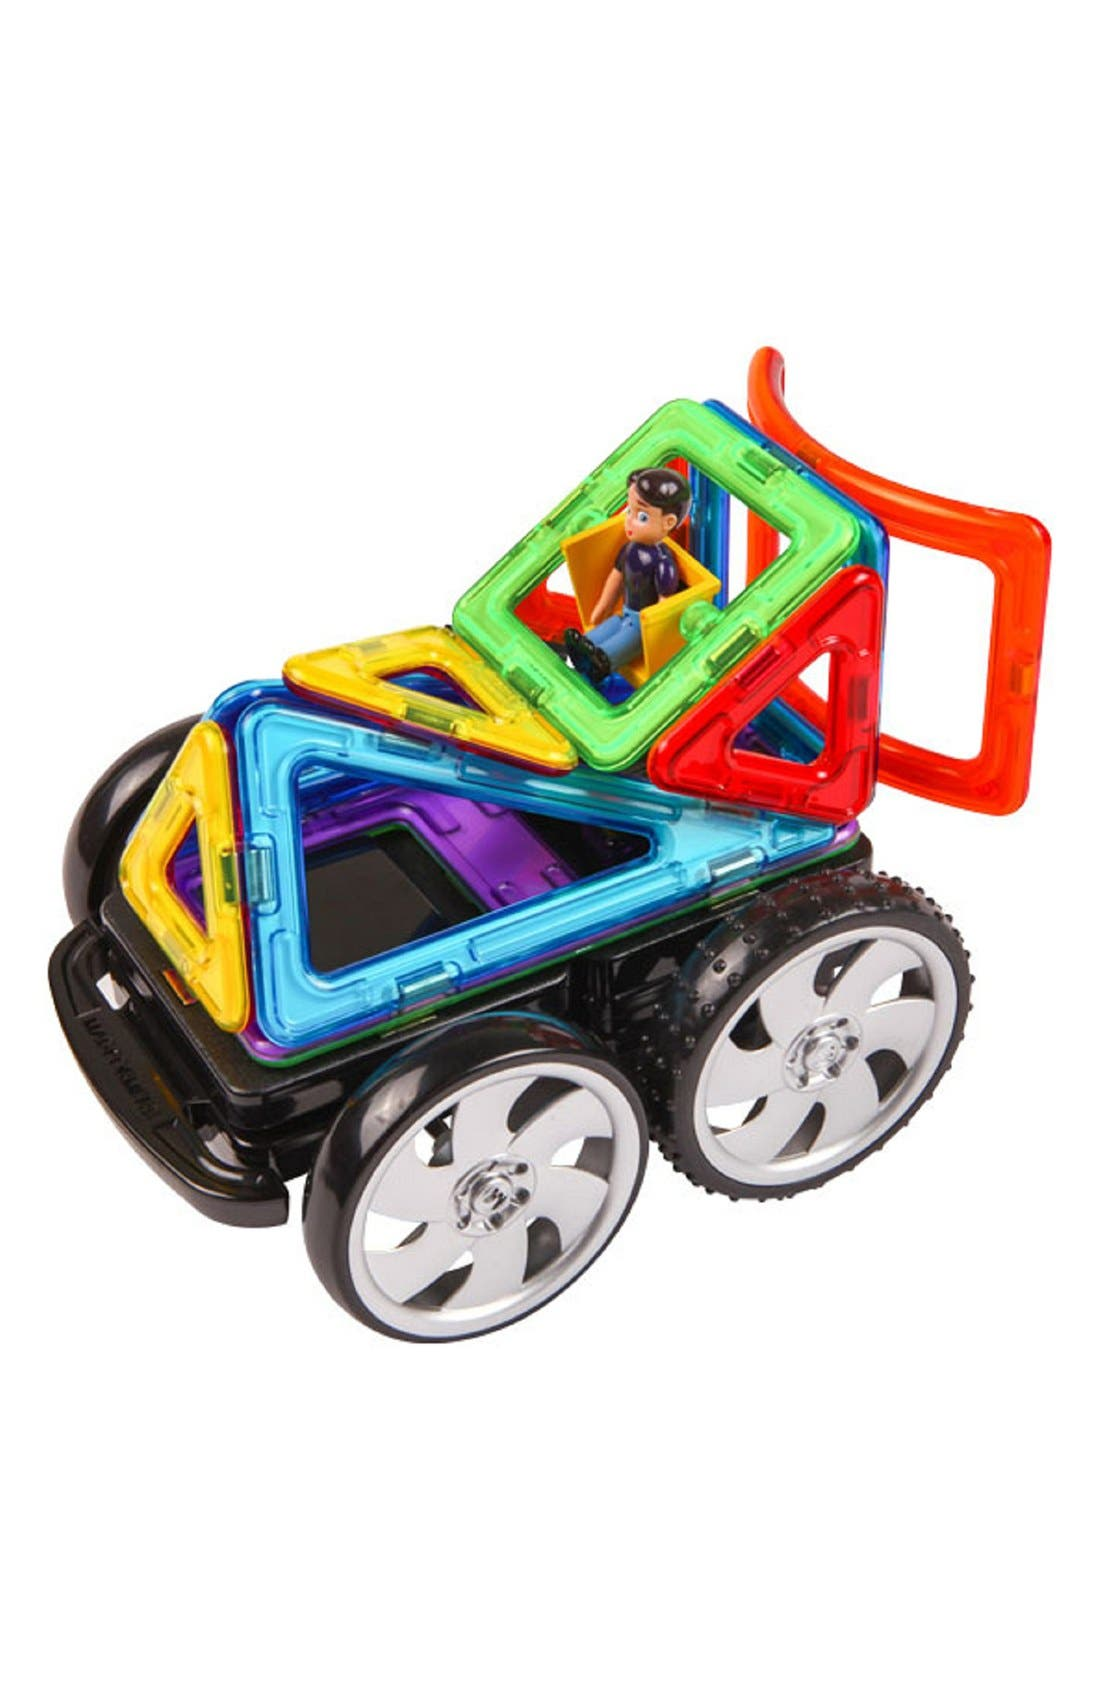 'Racing' Magnetic Remote Control Vehicle Construction Set,                             Alternate thumbnail 5, color,                             Rainbow